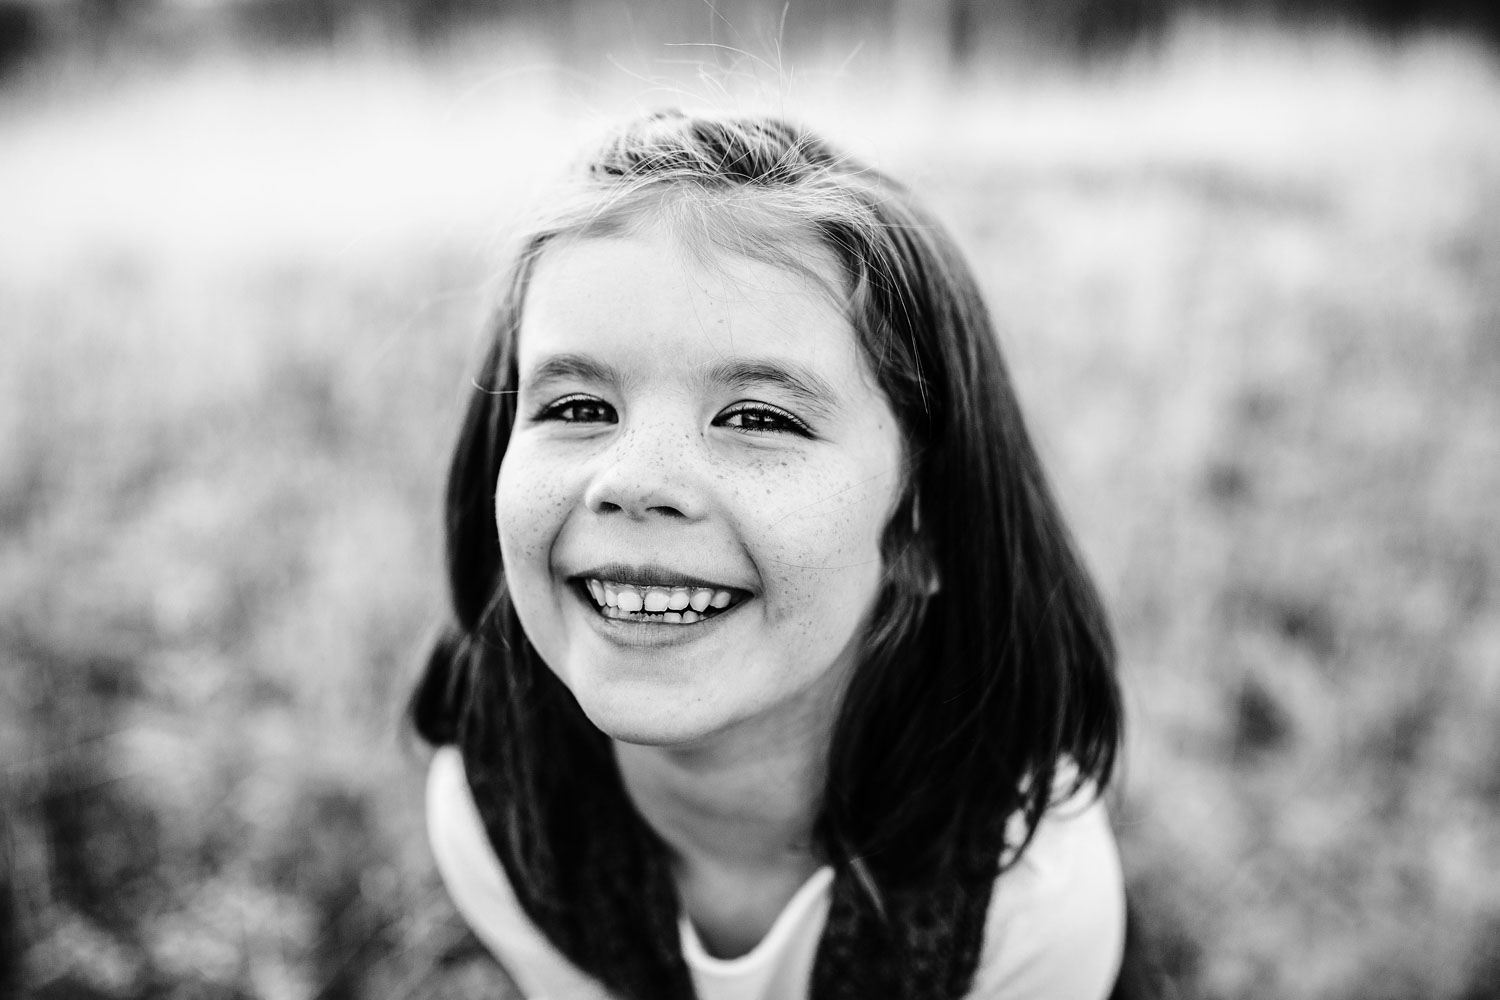 A classic portrait of a girl smiling is taken by Amy Wright, a family photographer based out of Roseville, California.